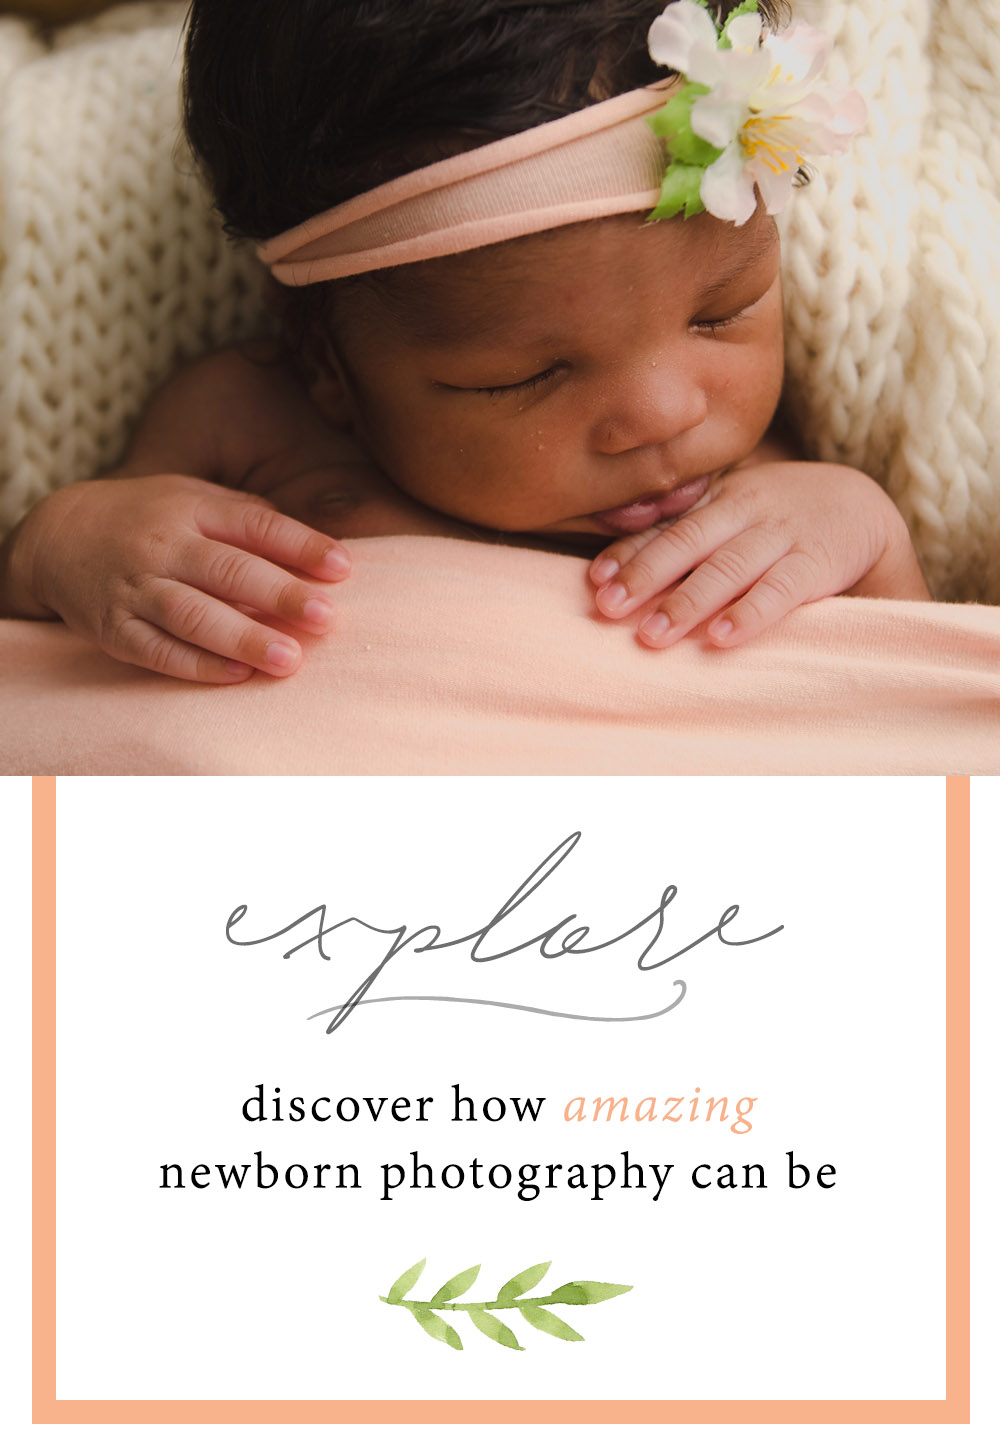 discover how amazing newborn photography can be